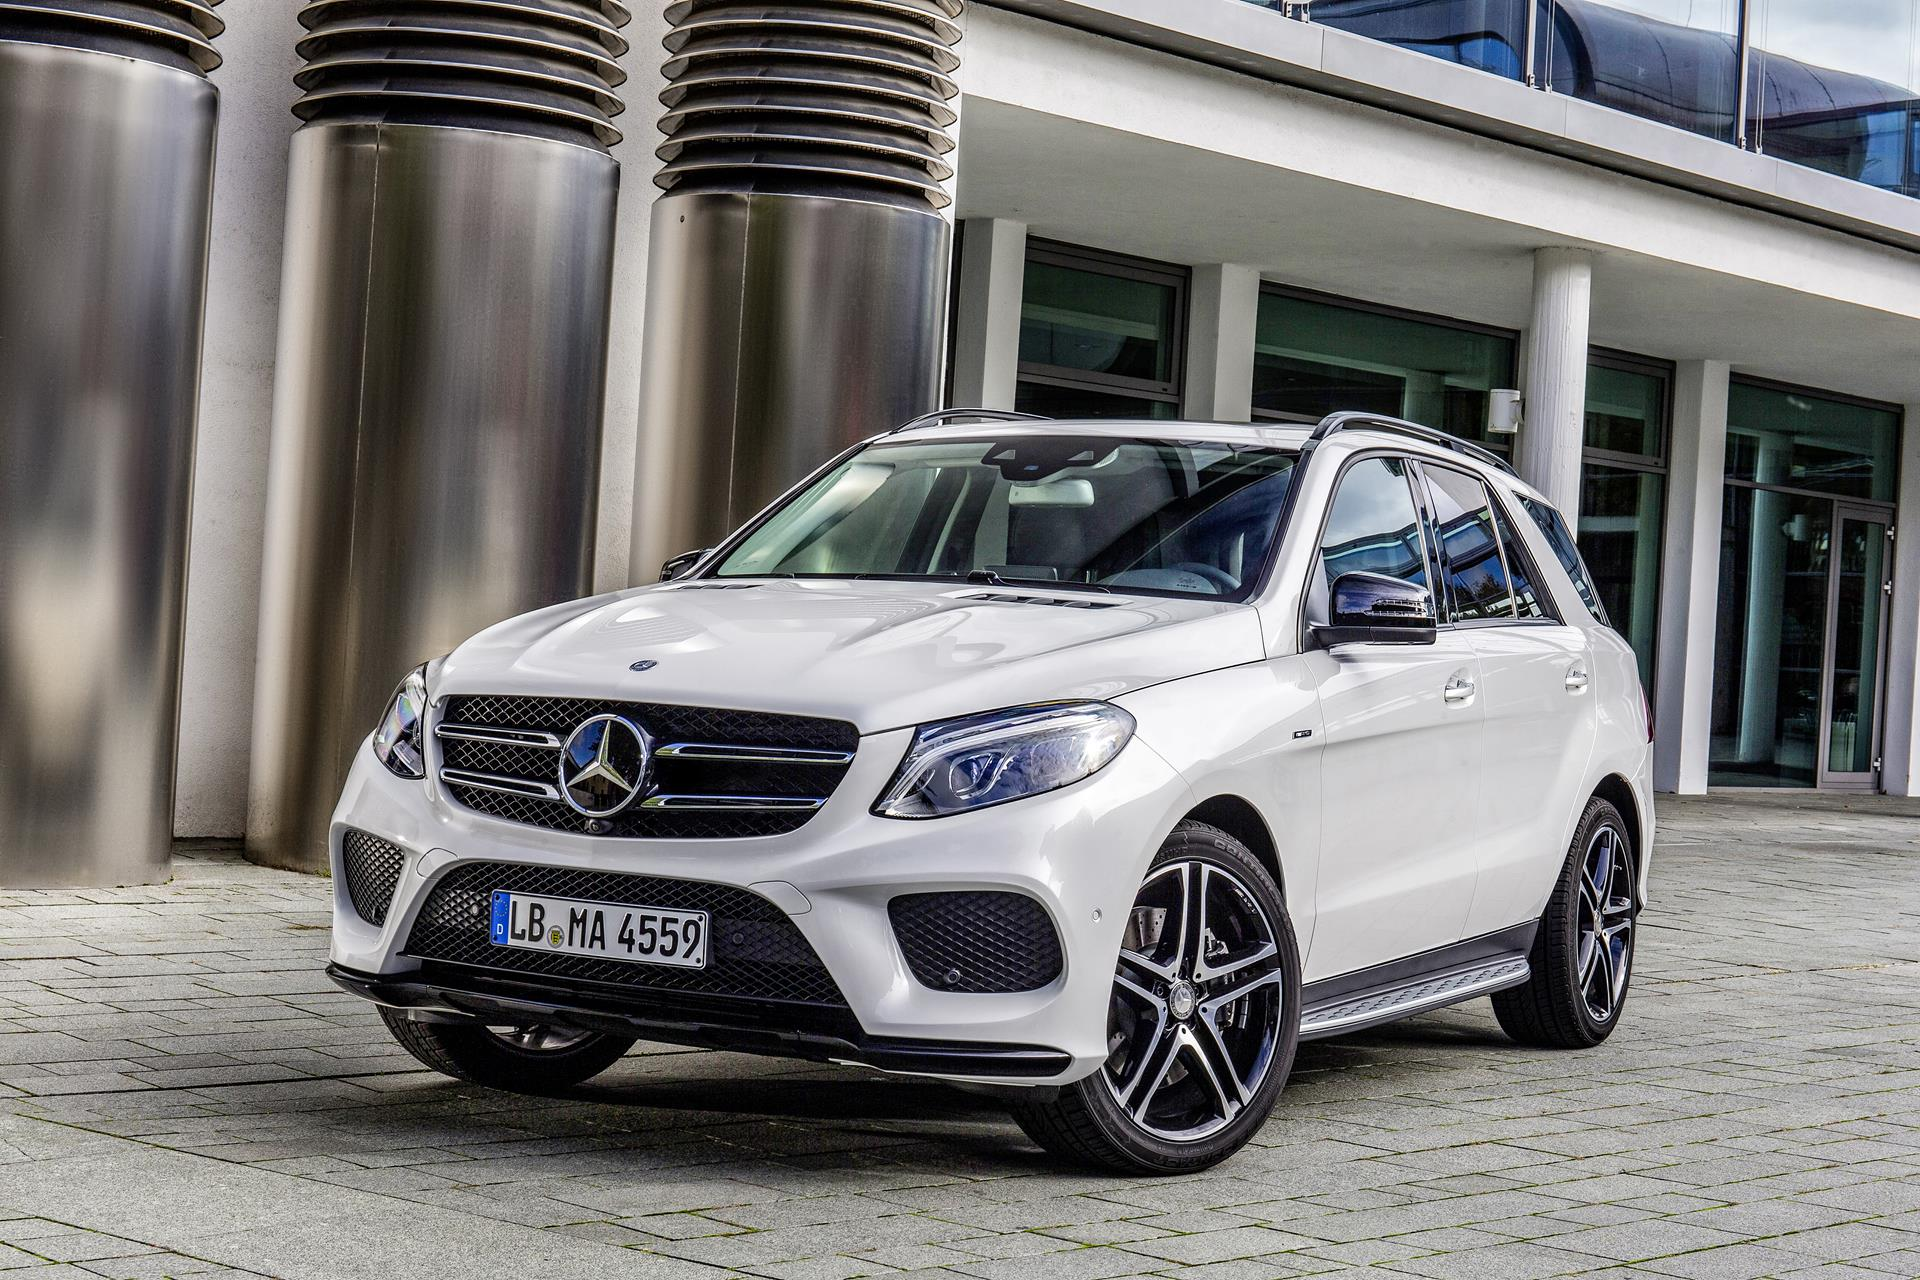 2016 mercedes benz gle 450 amg news and information for 2018 mercedes benz gle